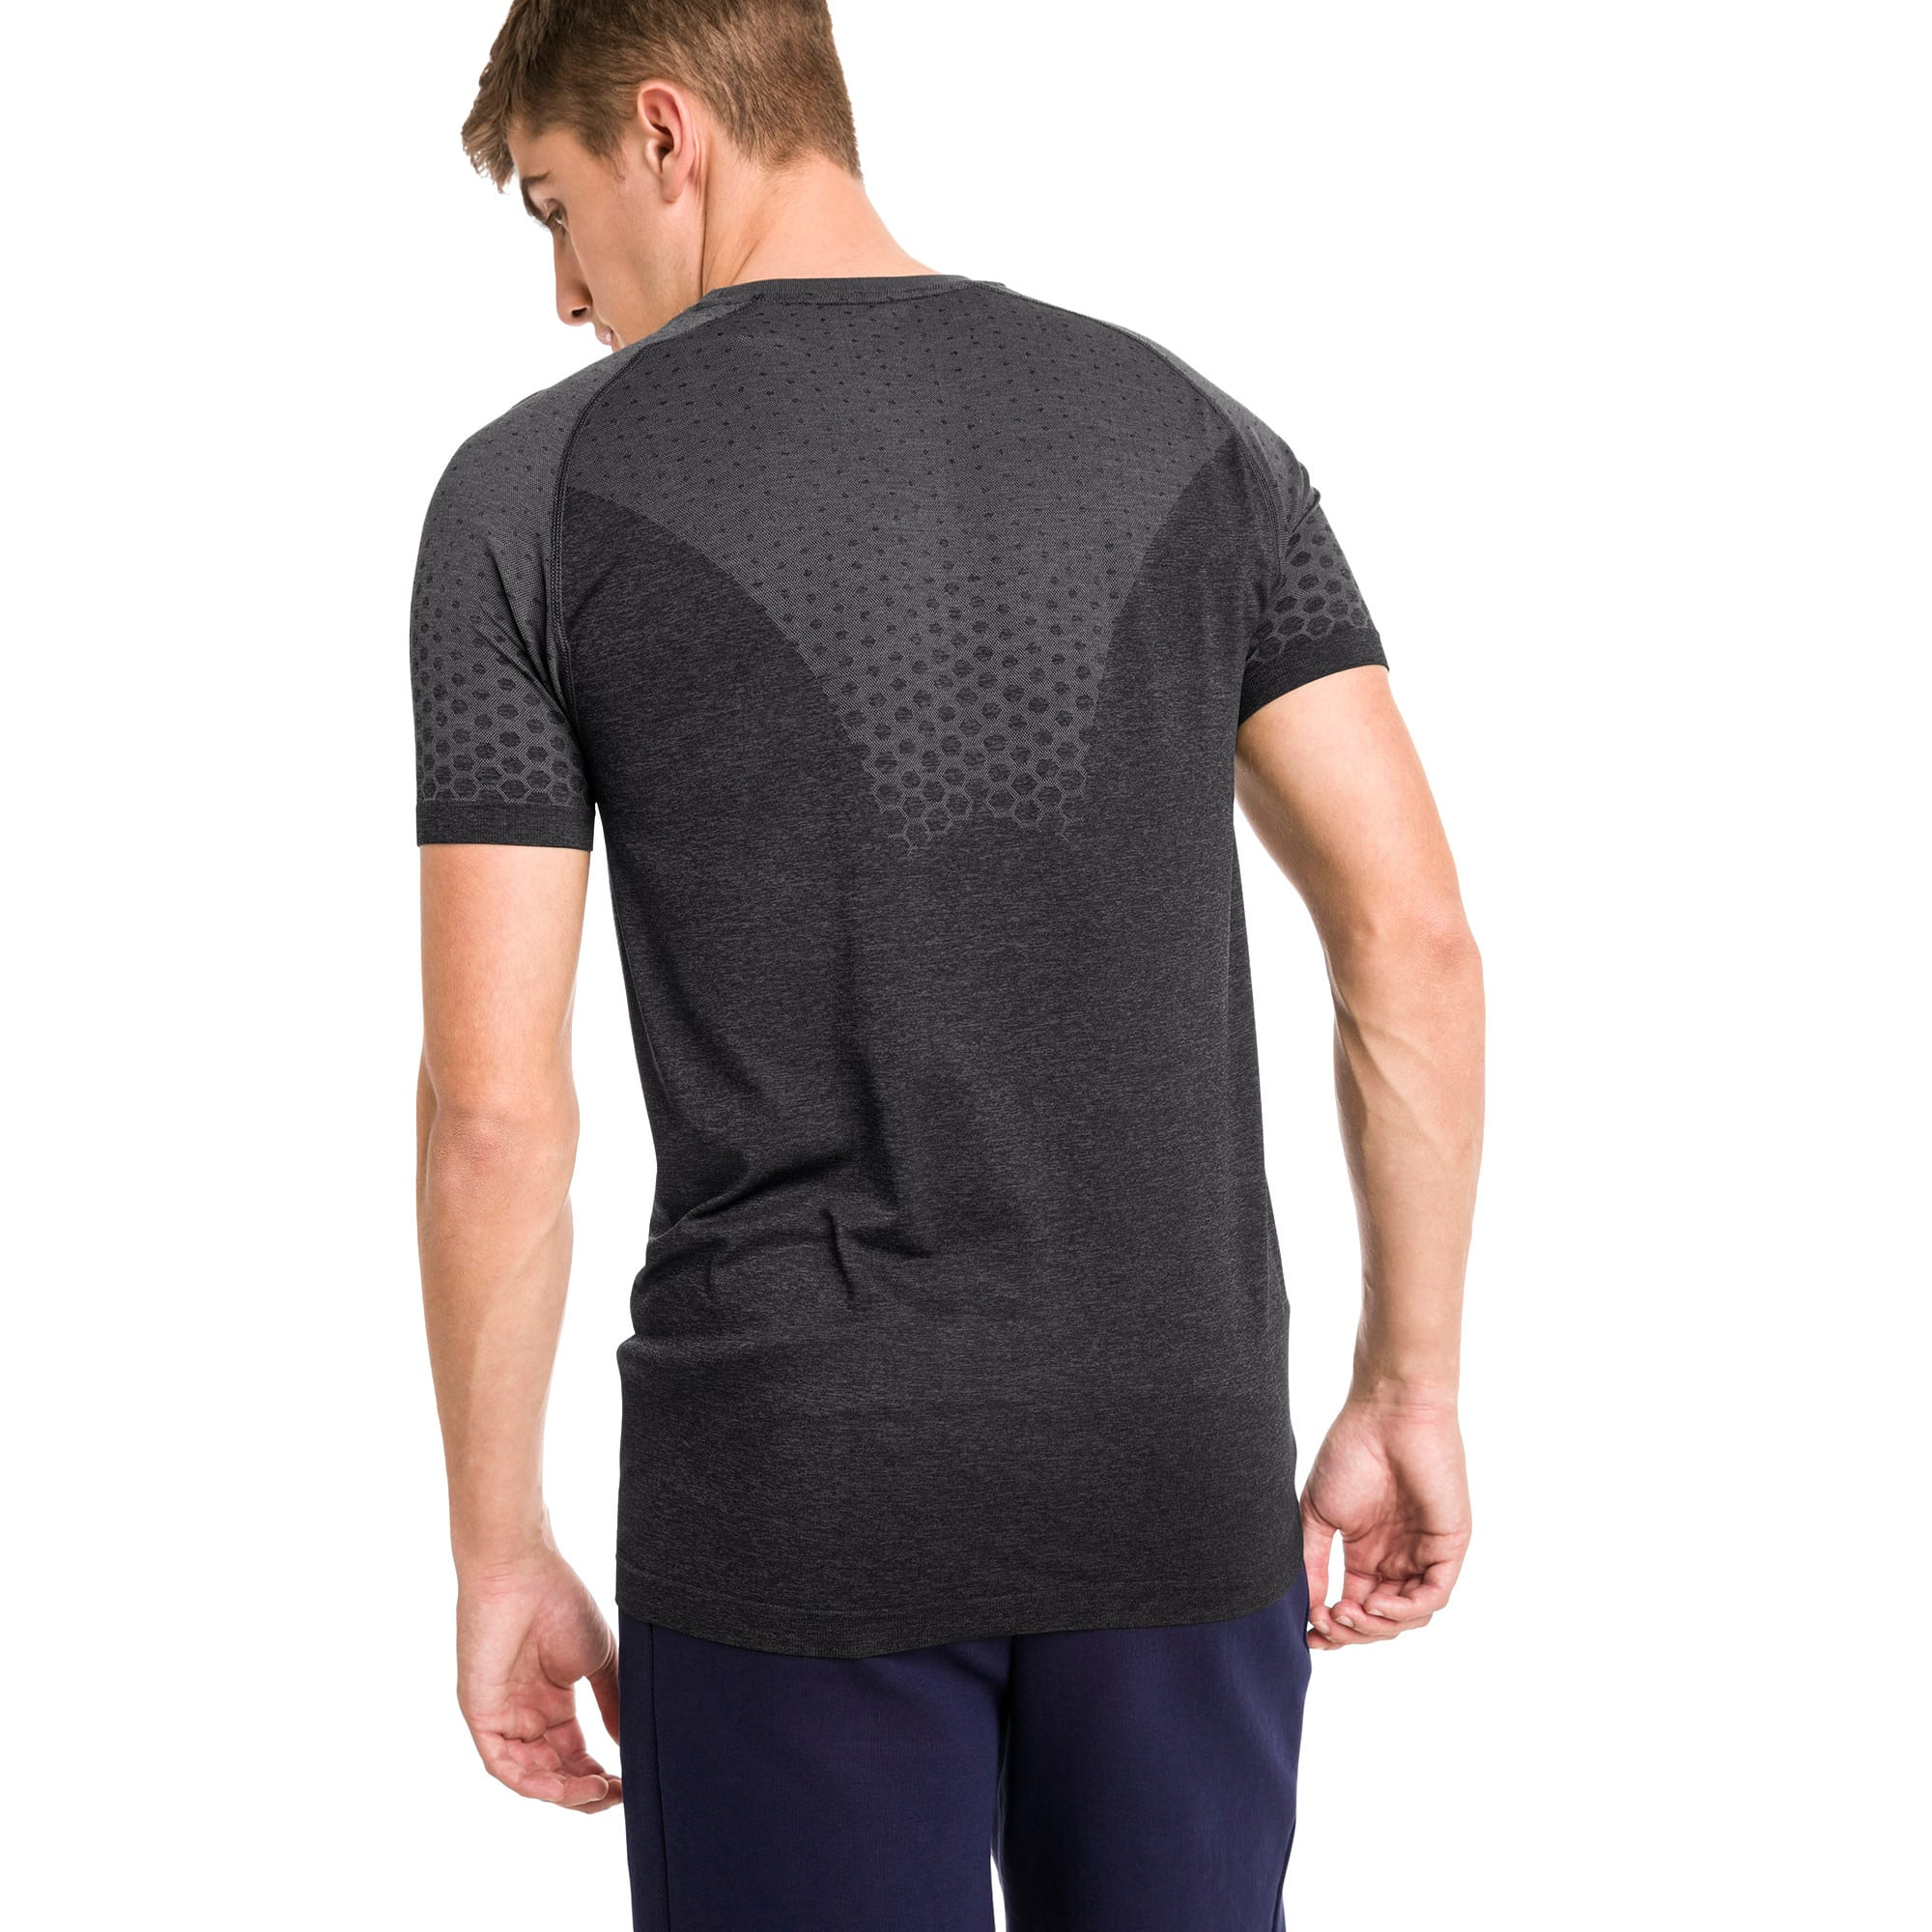 Thumbnail 2 of Essentials evoKNIT Herren T-Shirt, Puma Black, medium